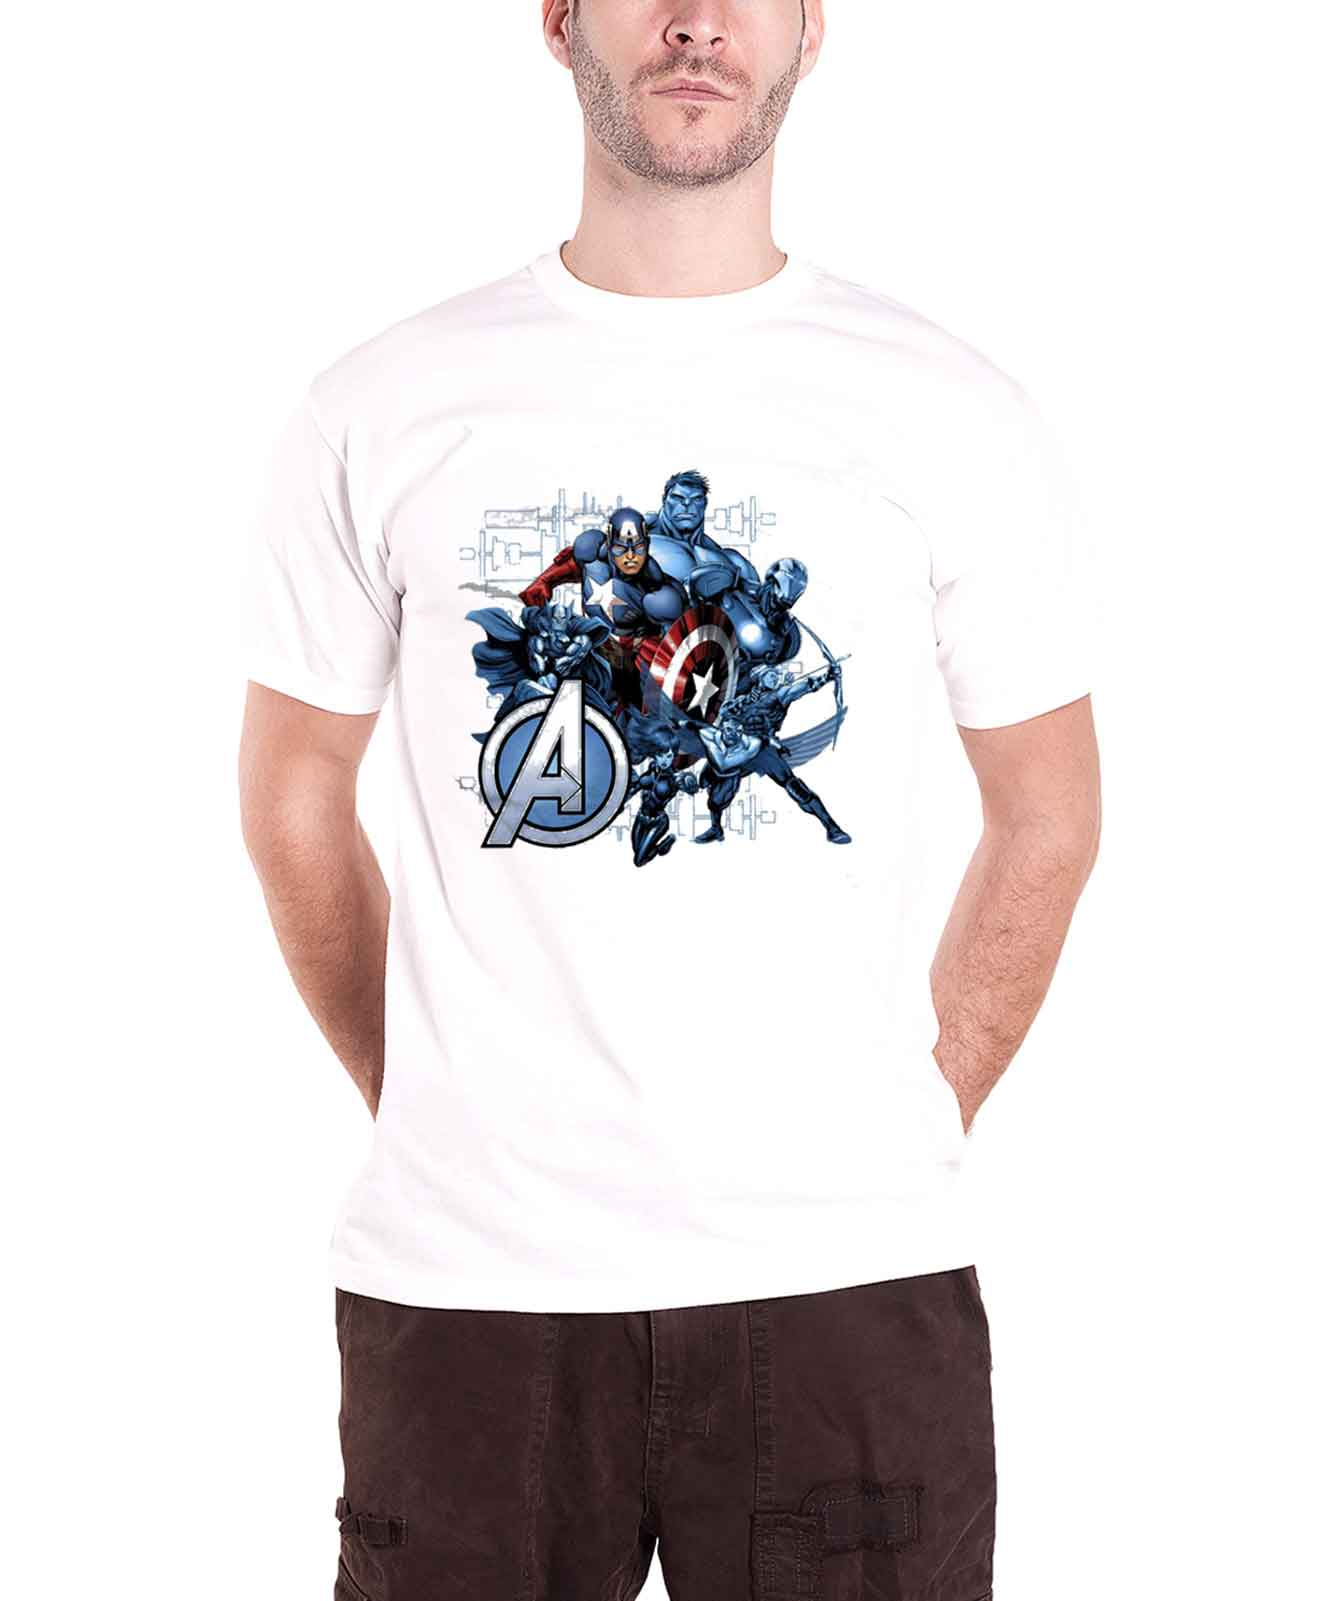 Captain-America-T-Shirt-official-Marvel-civil-war-daredevil-Thor-Hulk-Iron-Man